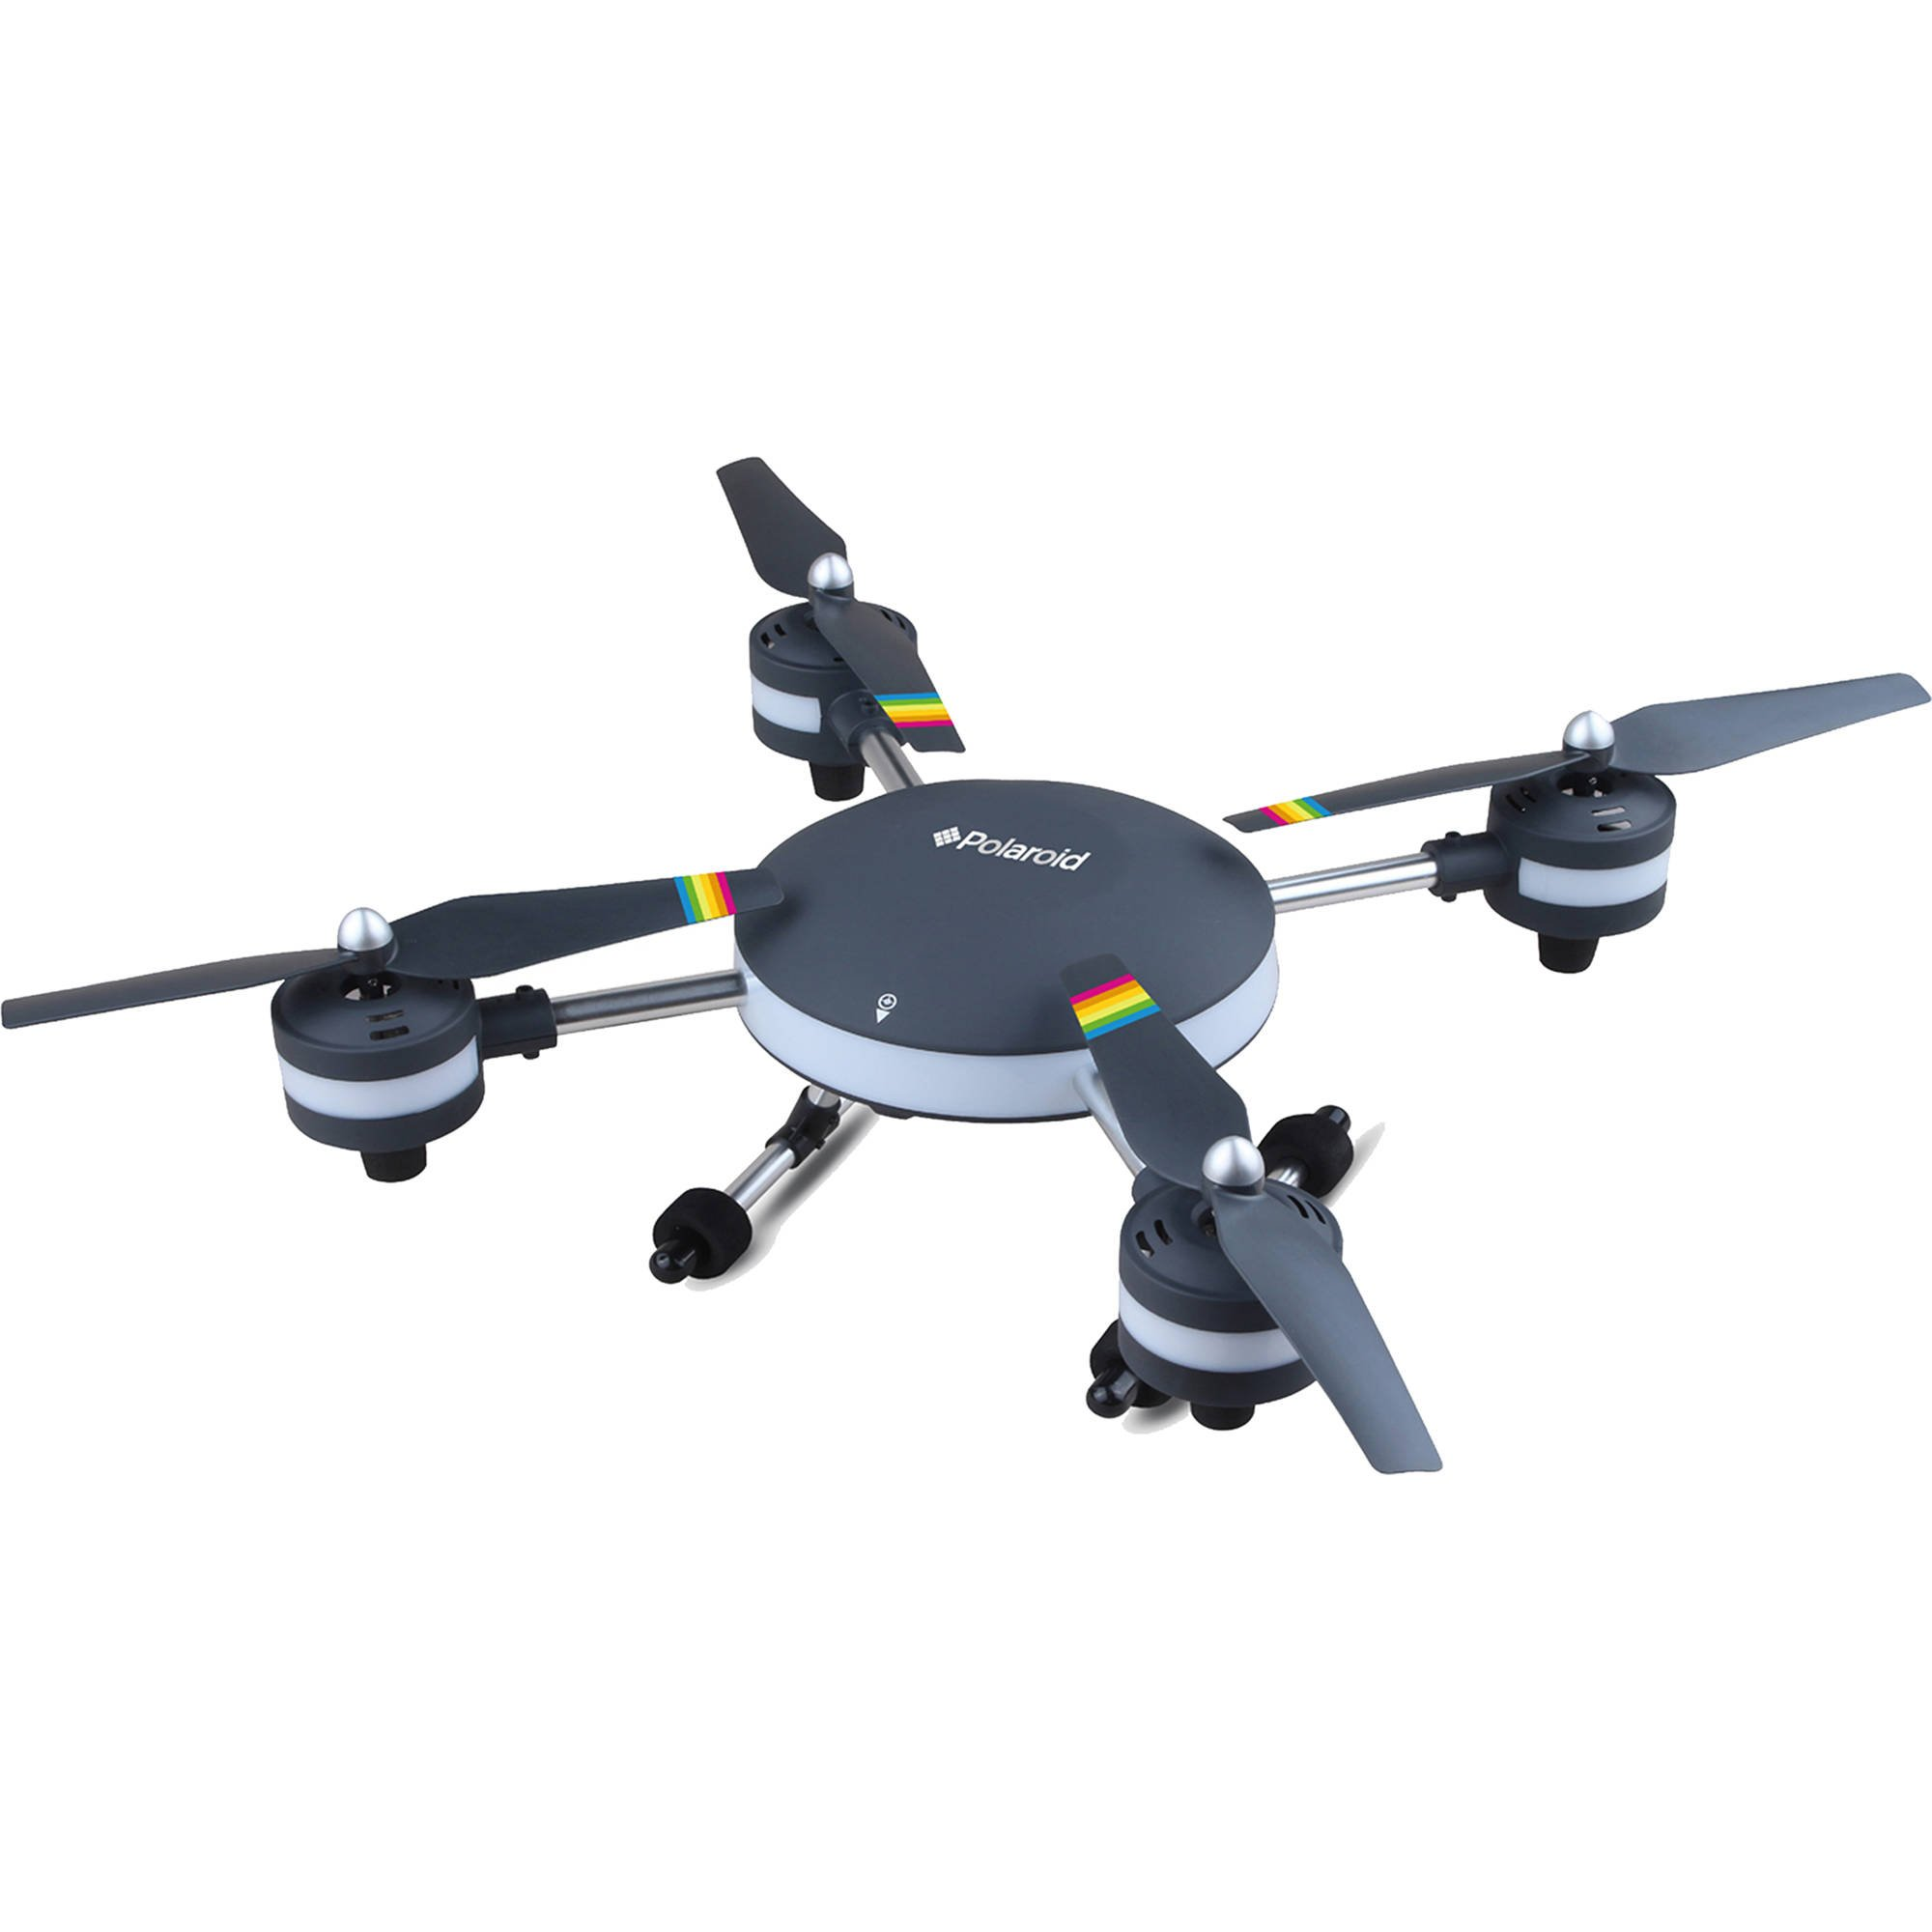 Polaroid PL3000 Remote Control Camera Drone, Black by Polaroid